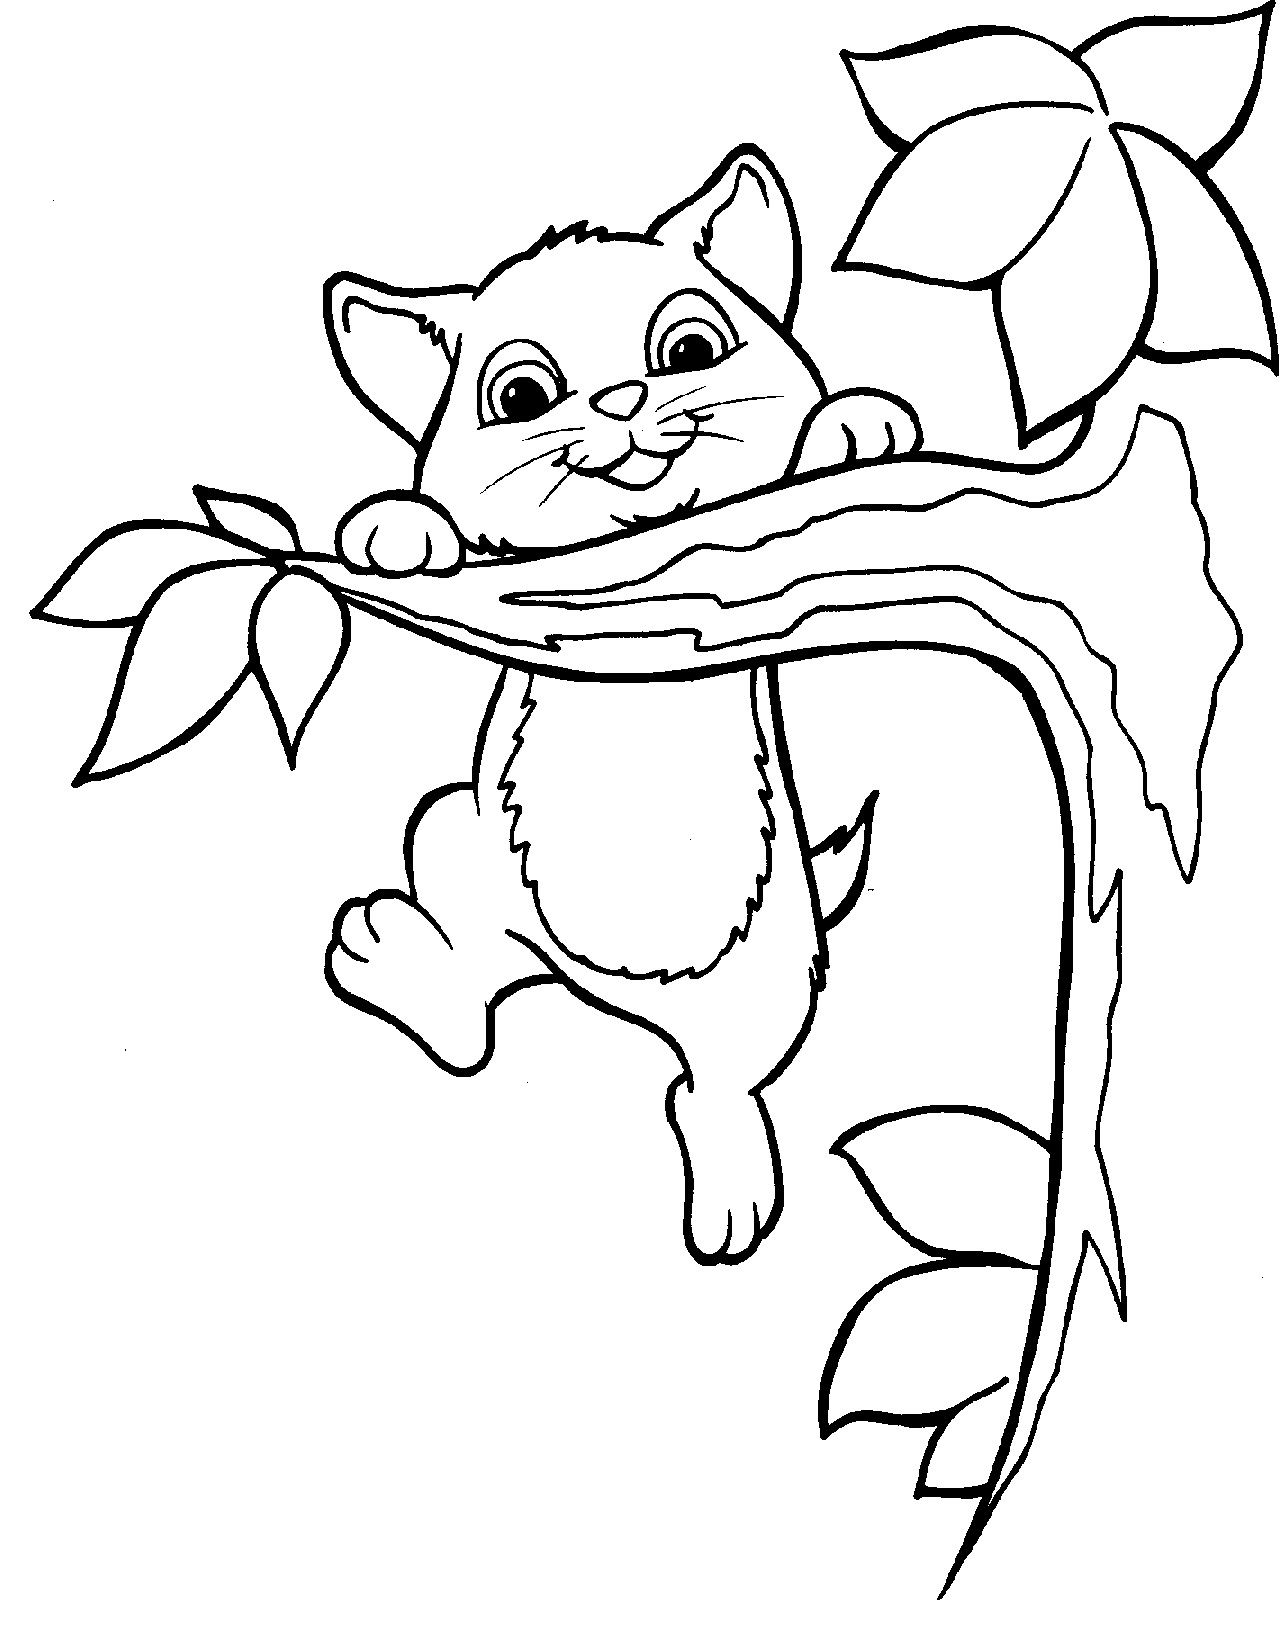 The Cat Climbed The Tree Coloring Page Cat Coloring Page Tree Coloring Page Animal Coloring Pages